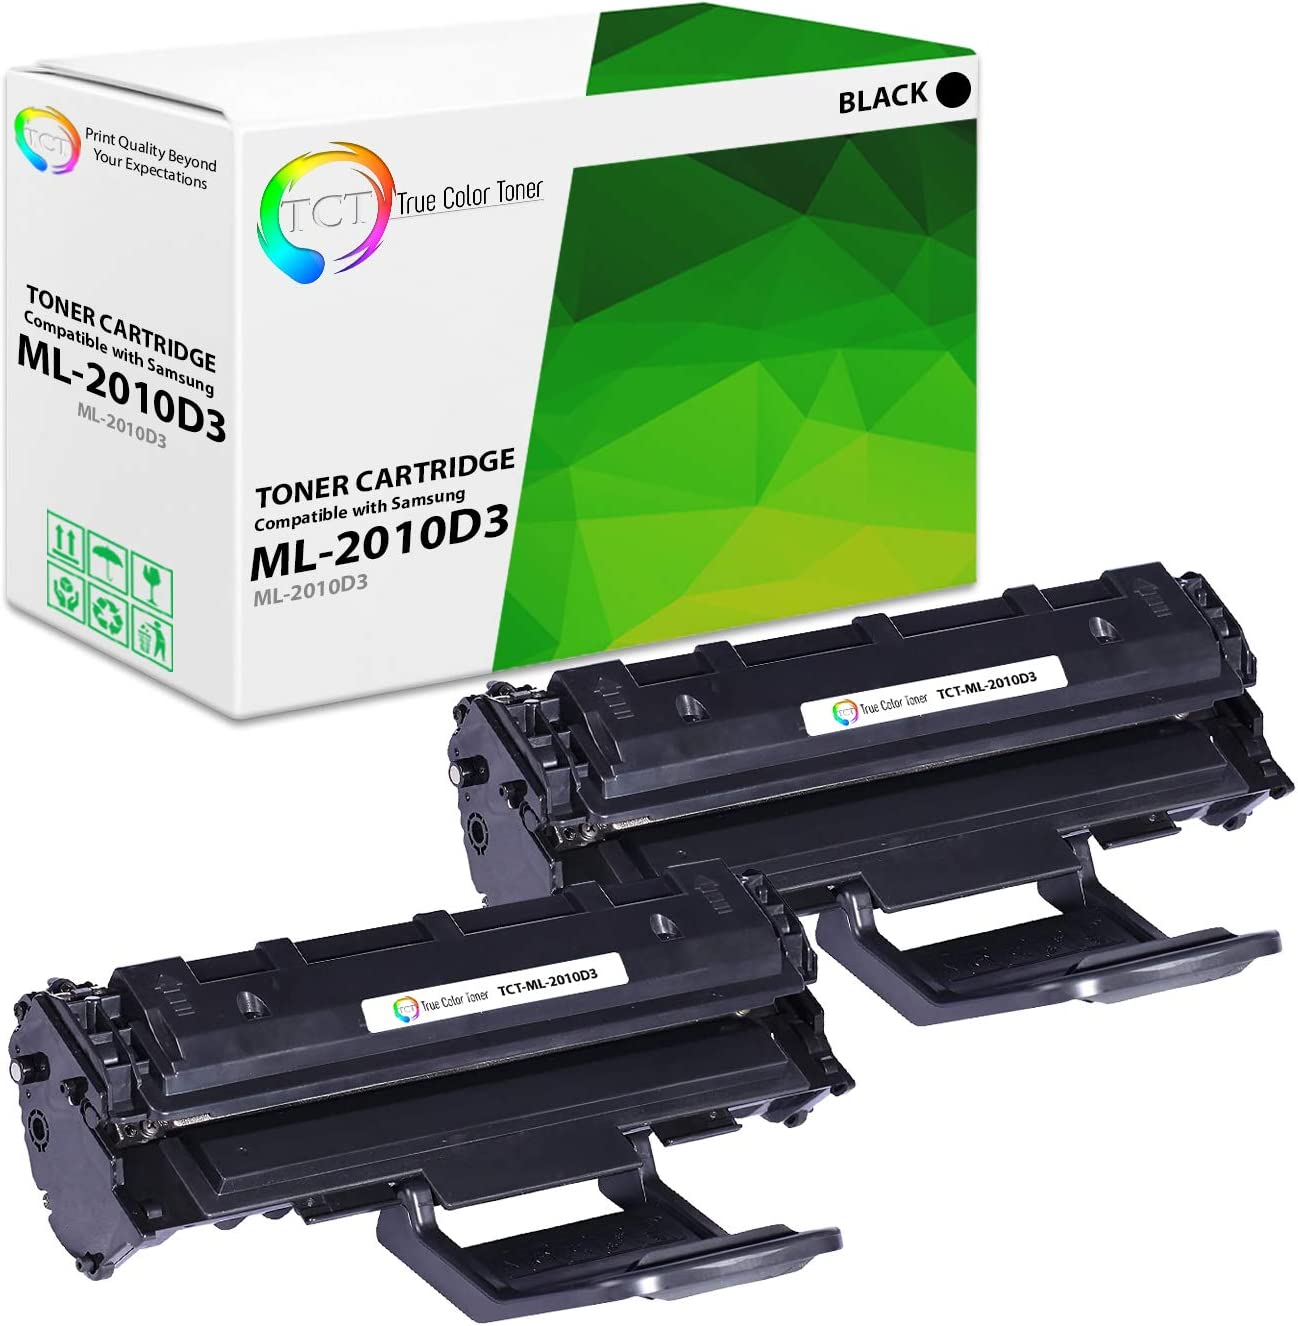 SCX-4521F SCX-4521FG Printers - 2 Pack TCT Premium Compatible Toner Cartridge Replacement for Samsung ML-2010D3 Black Works with Samsung ML-2010 ML-2510 ML-2570 ML-2571N 3,000 Pages